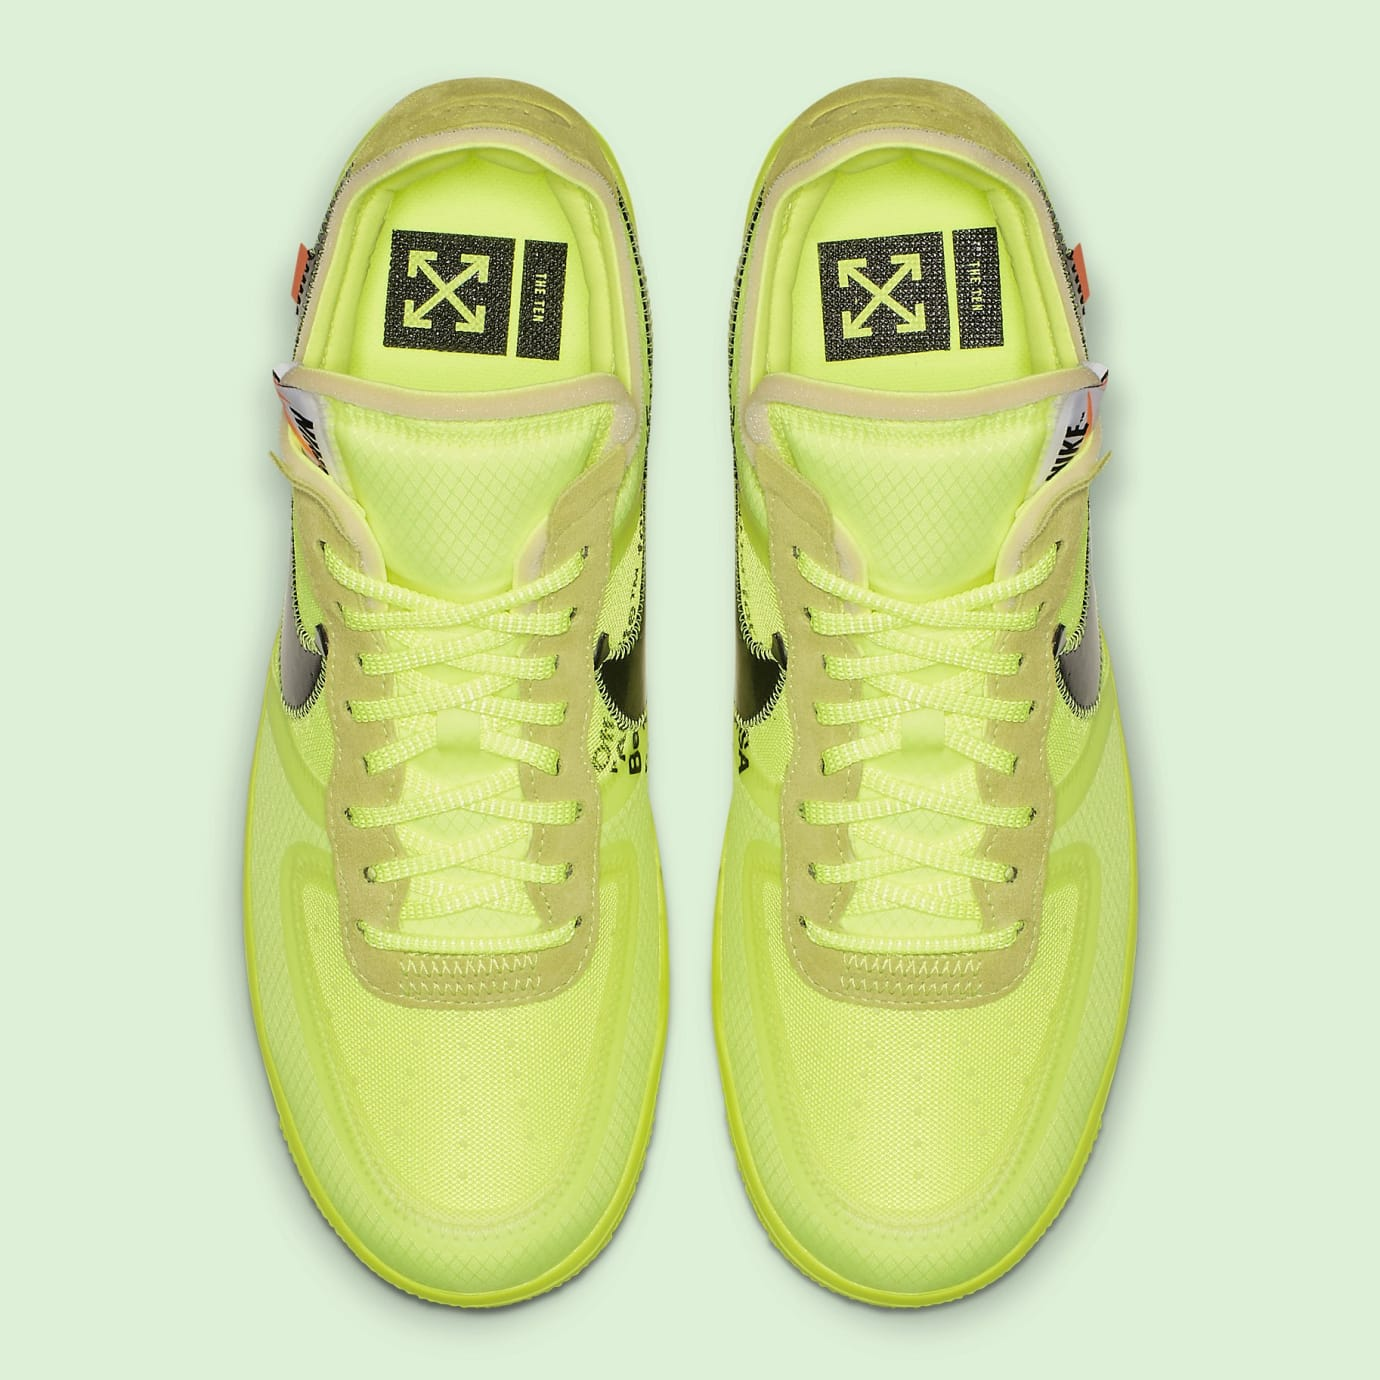 sale retailer 74517 c14cc Off-White x Nike Air Force 1 Low 'Volt/Cone/Black/Hyper Jade ...